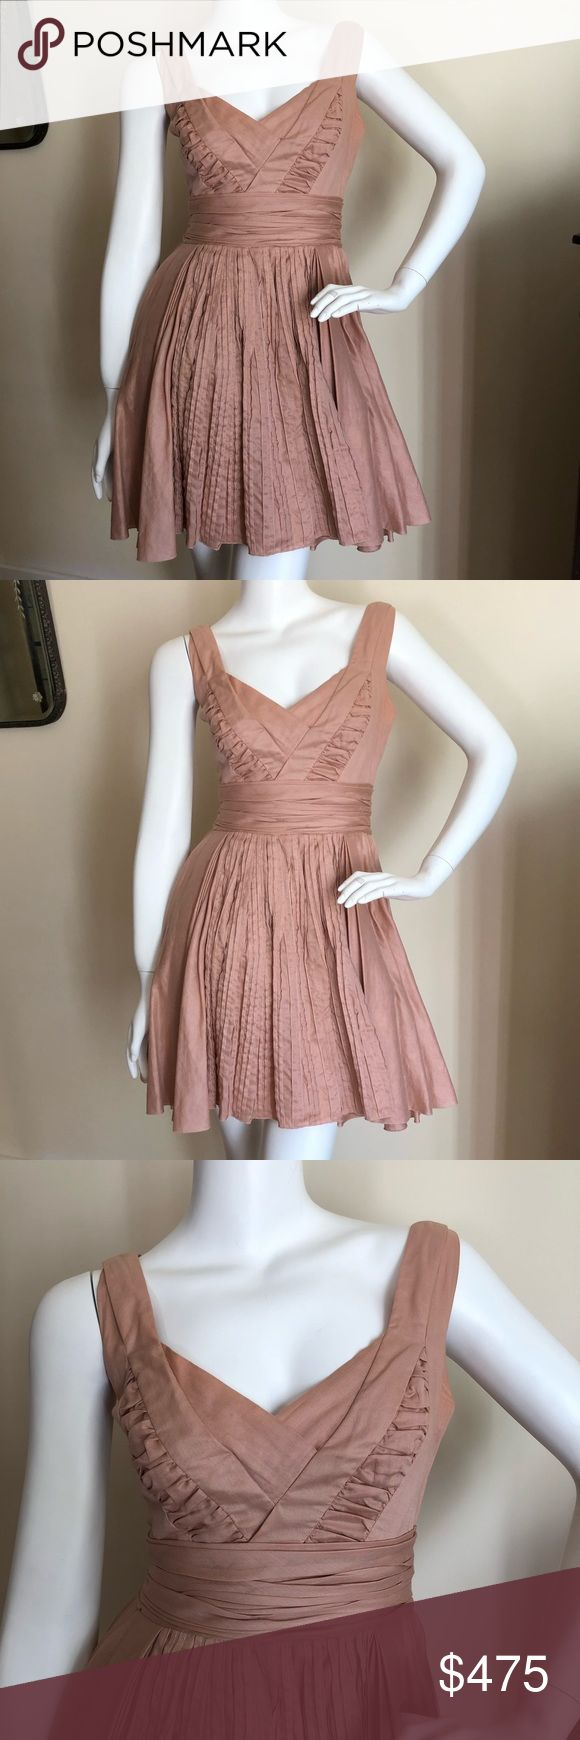 "Prada dusty rose cocktail dress Breathtaking authentic Prada dusty rose colored cocktail dress. Pleating throughout. Size 38 which is a US XS. Excellent condition!! Skirt has tulle under layers so it flows so nicely! Cotton. Length 31"" pit to pit 16"" waist flat across 13"". Prada Dresses"